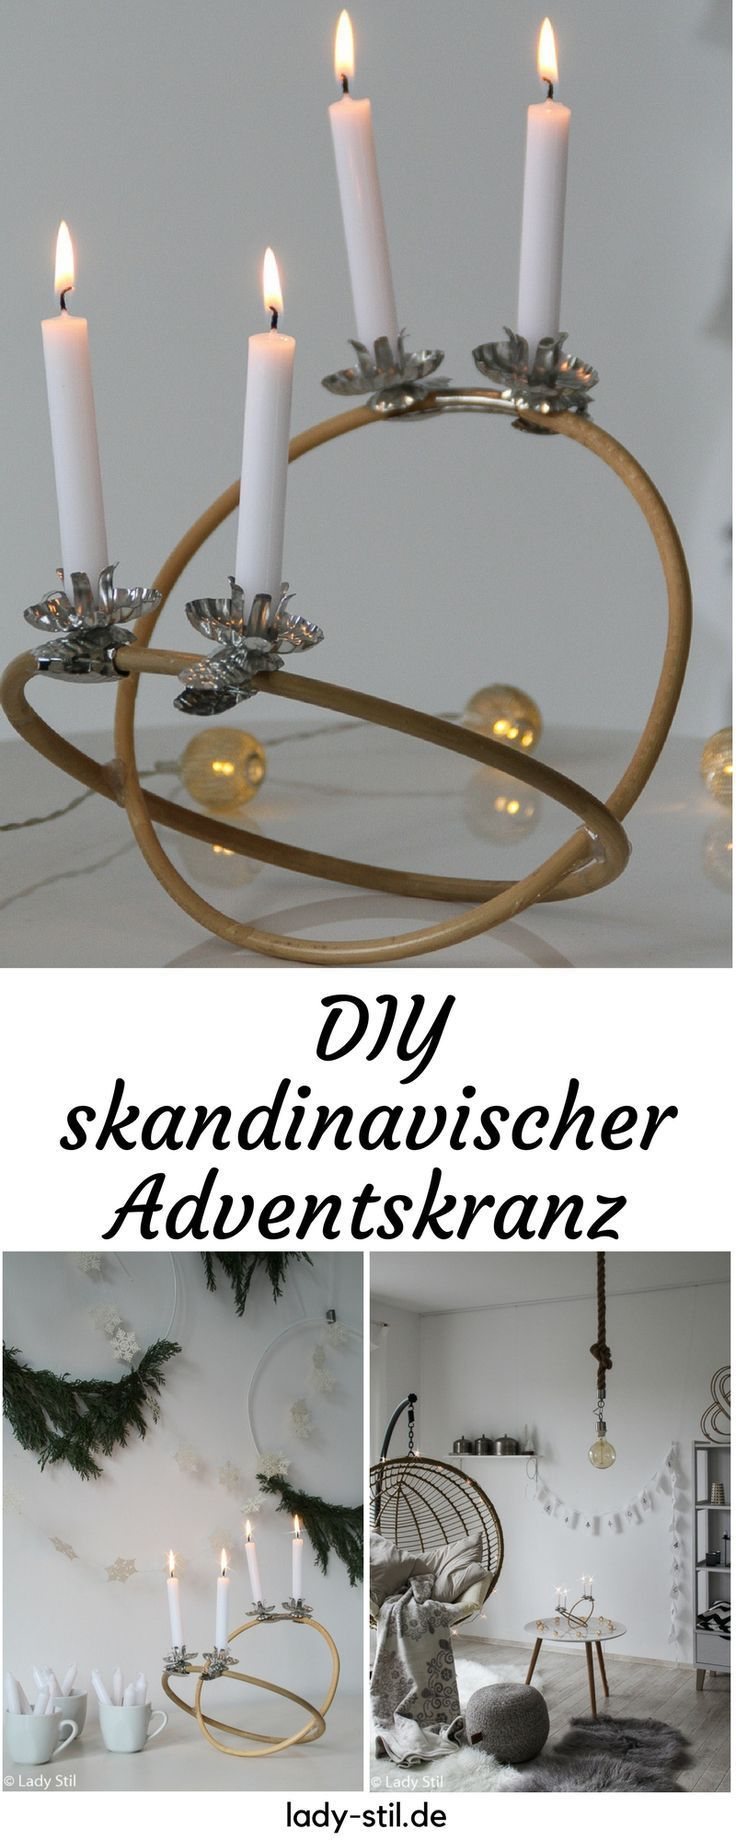 diy skandinavischer adventskranz schlicht und einfach. Black Bedroom Furniture Sets. Home Design Ideas